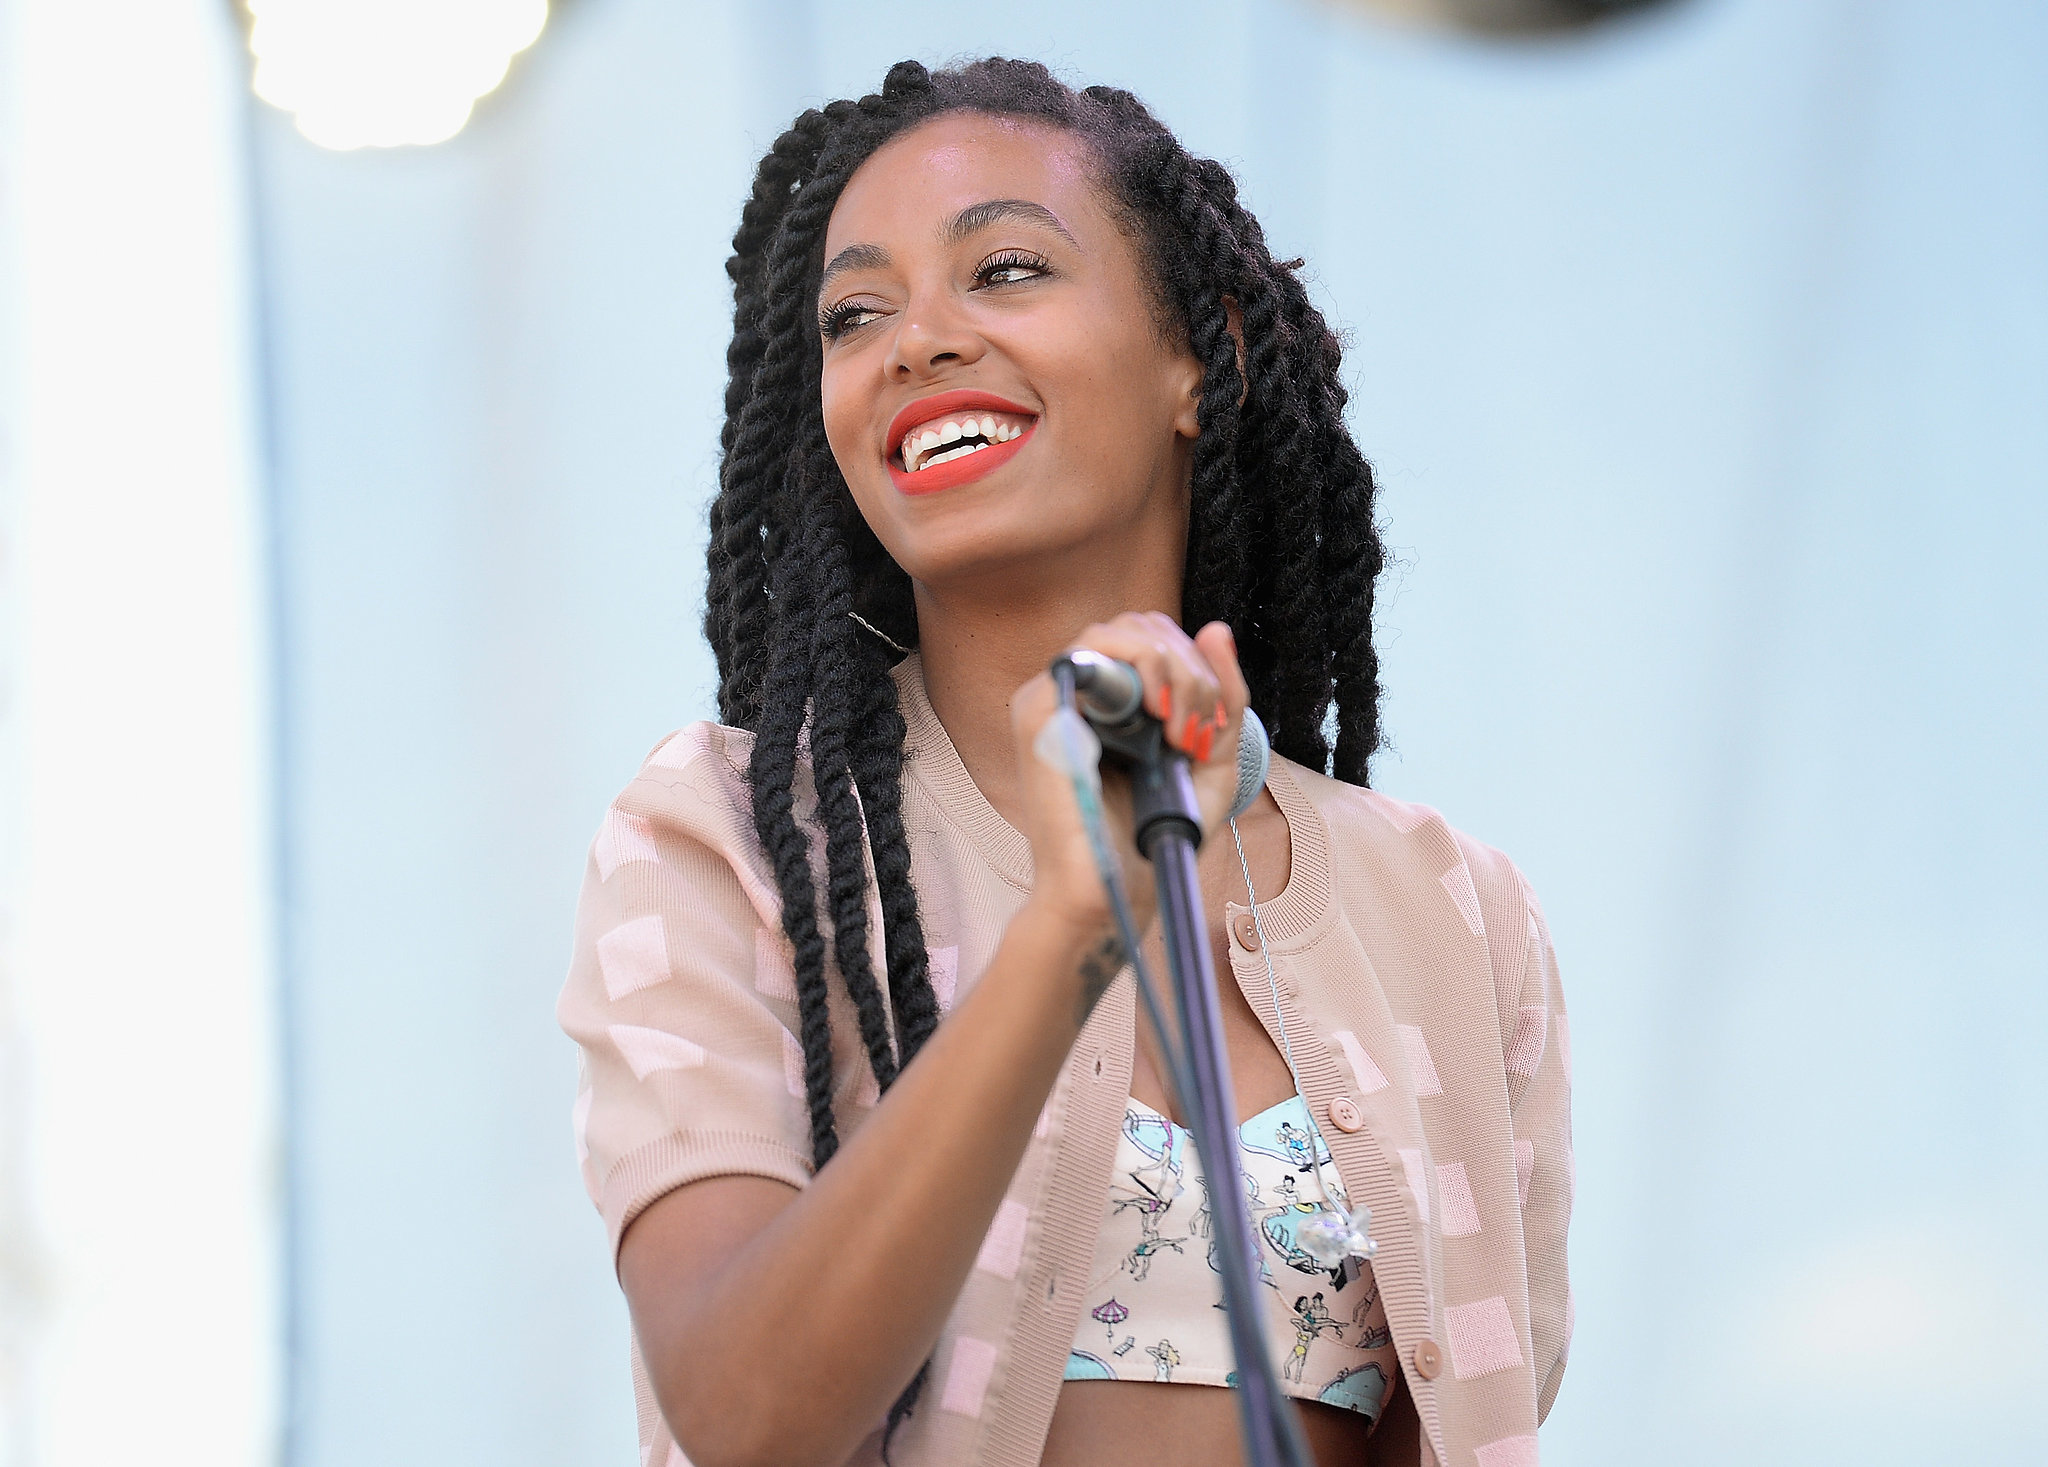 Singer Solange Knowles kept things in the same color family at the Bonnaroo Music and Arts Festival, wearing tangerine lipstick, bright orange nail polish, and a peach-hued top.